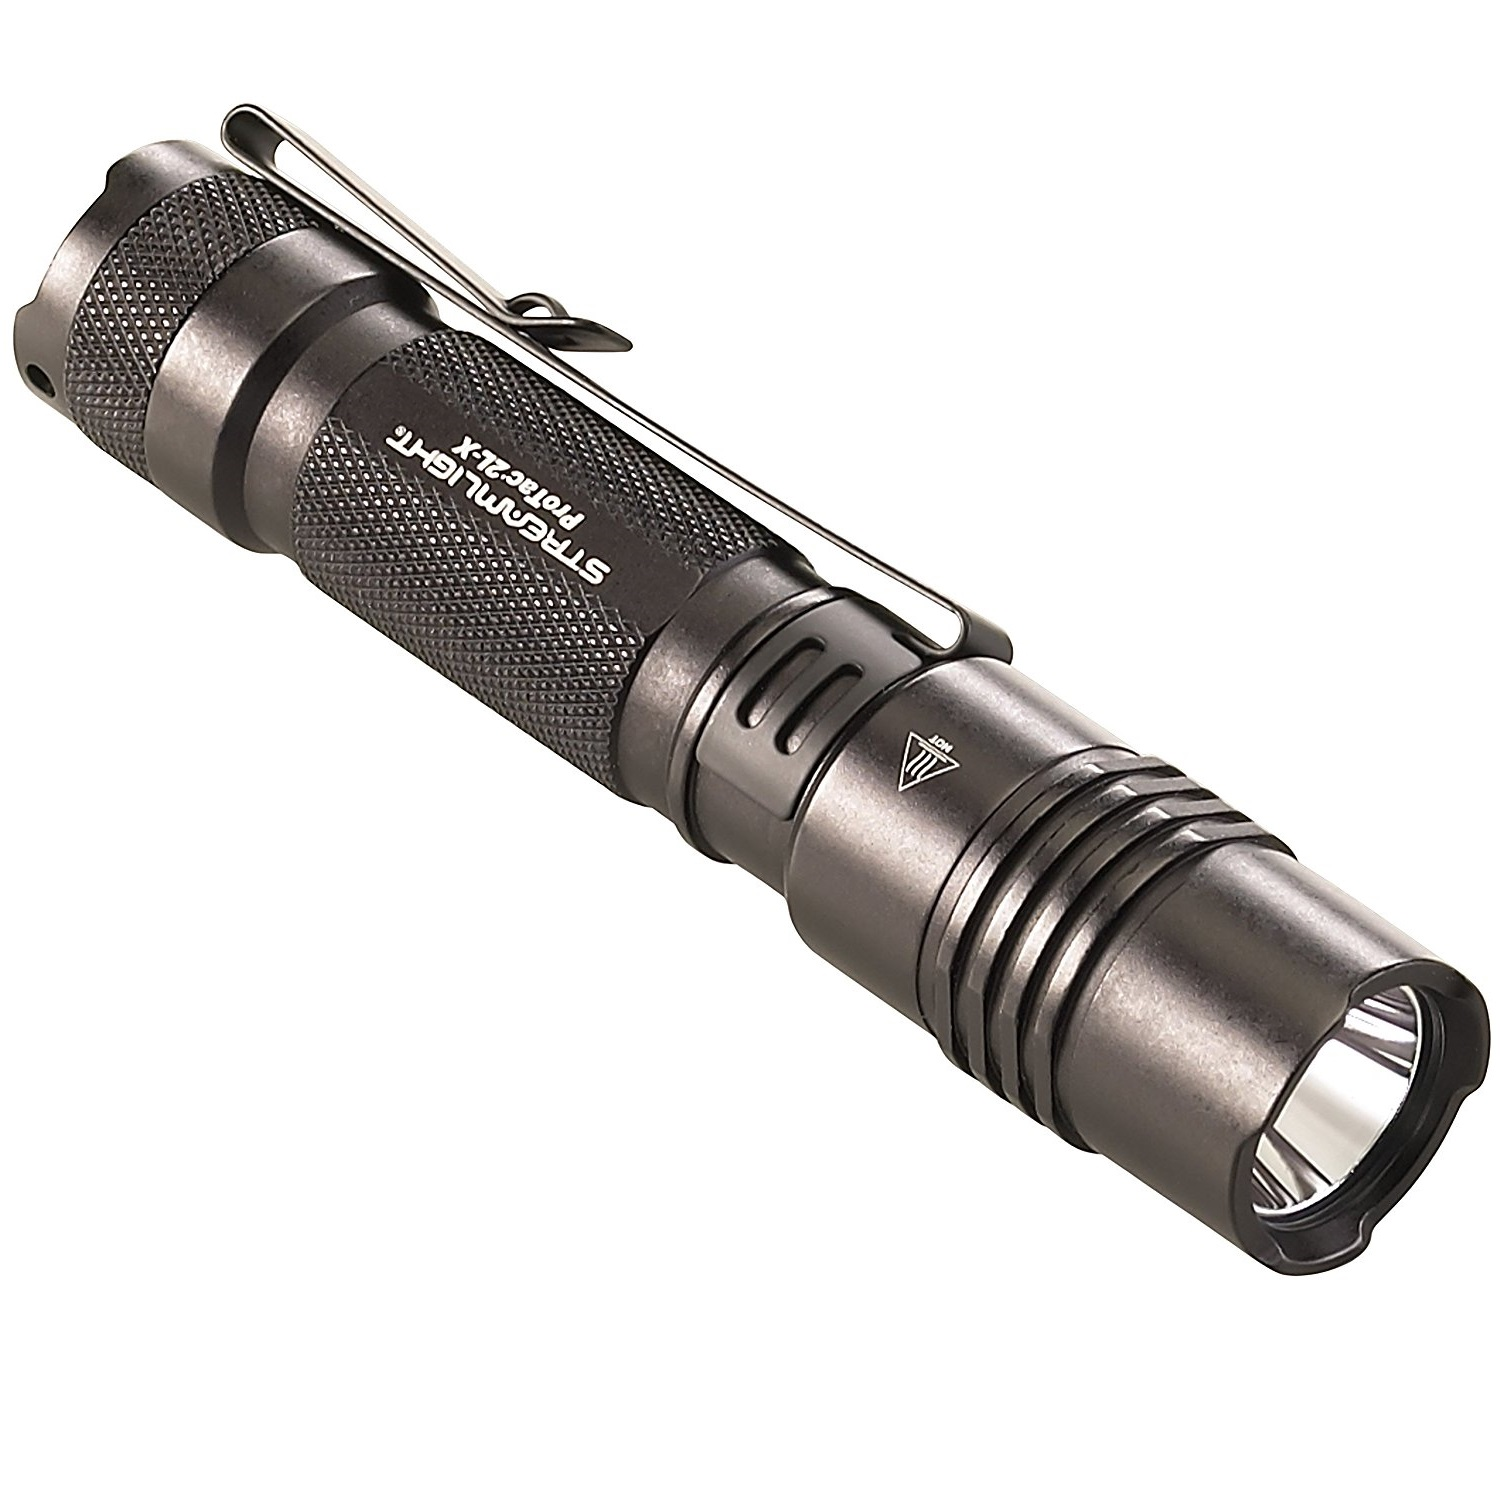 Streamlight ProTac 2L-X 500 Lumens Flashlight - Black